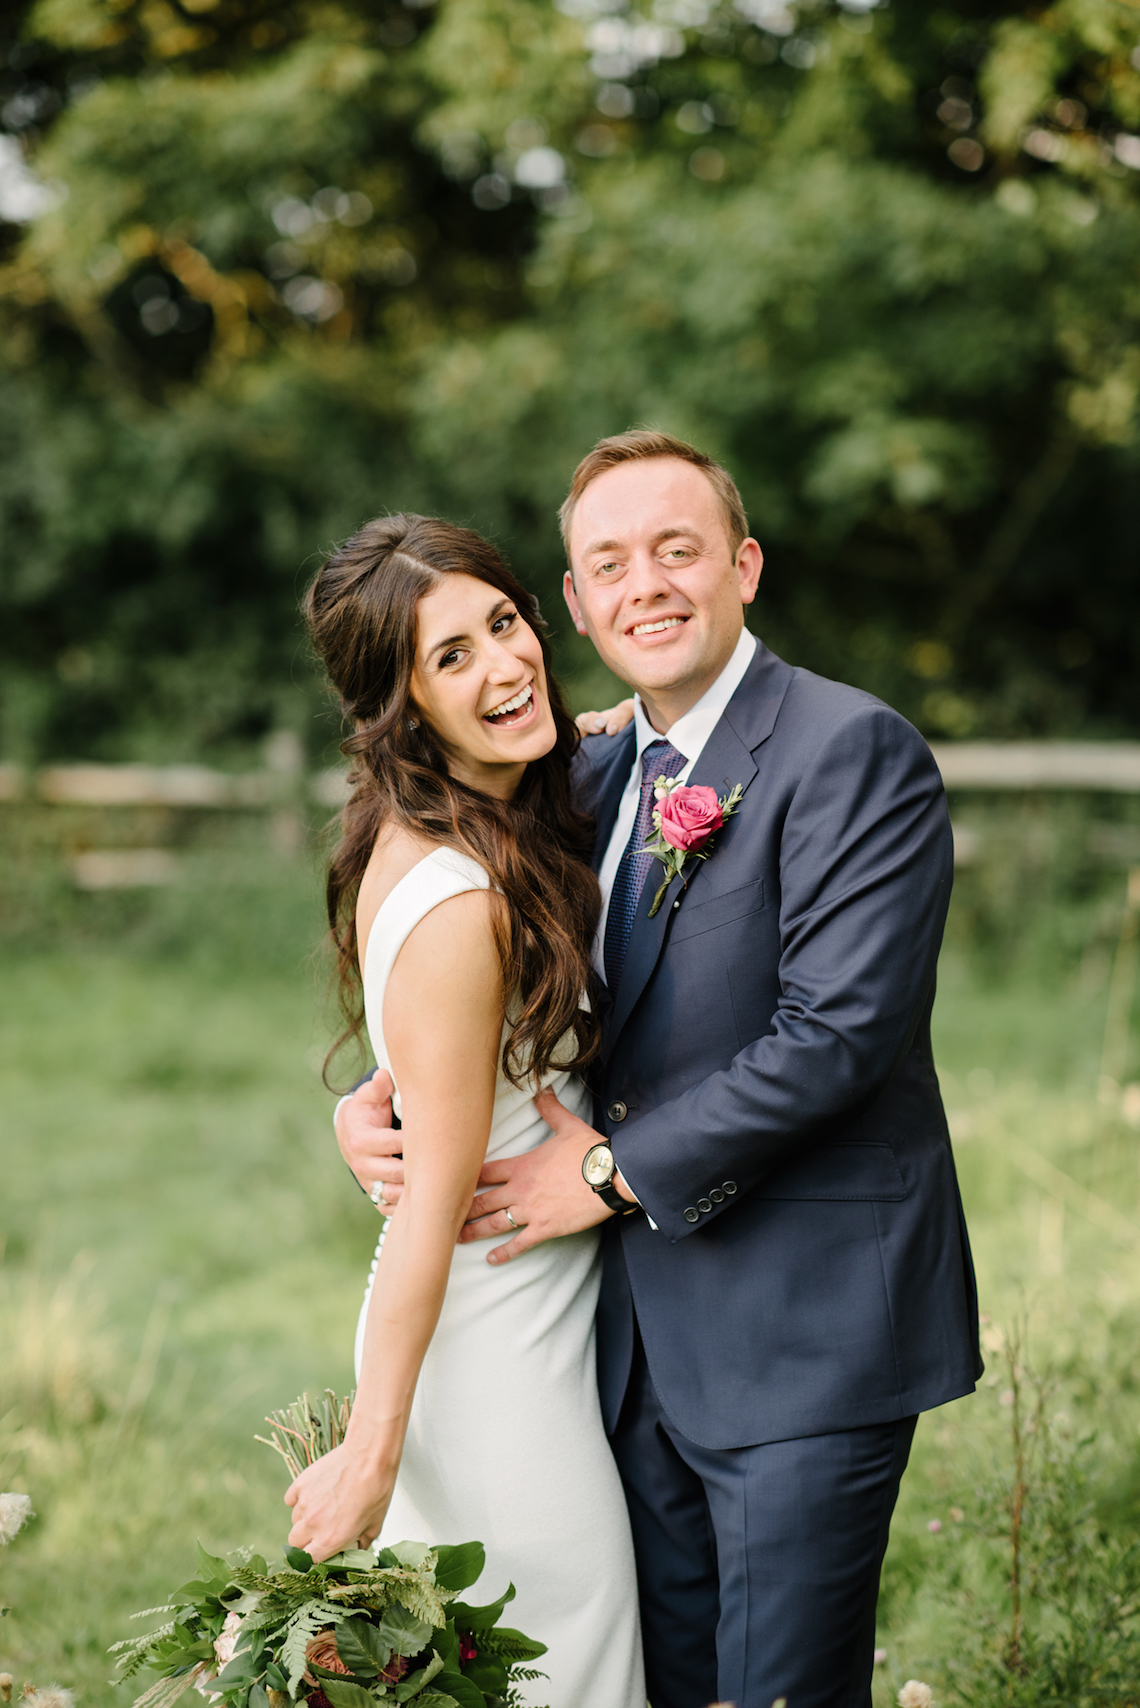 A Floral Explosion At An English Garden Wedding | Dominique Bader 28